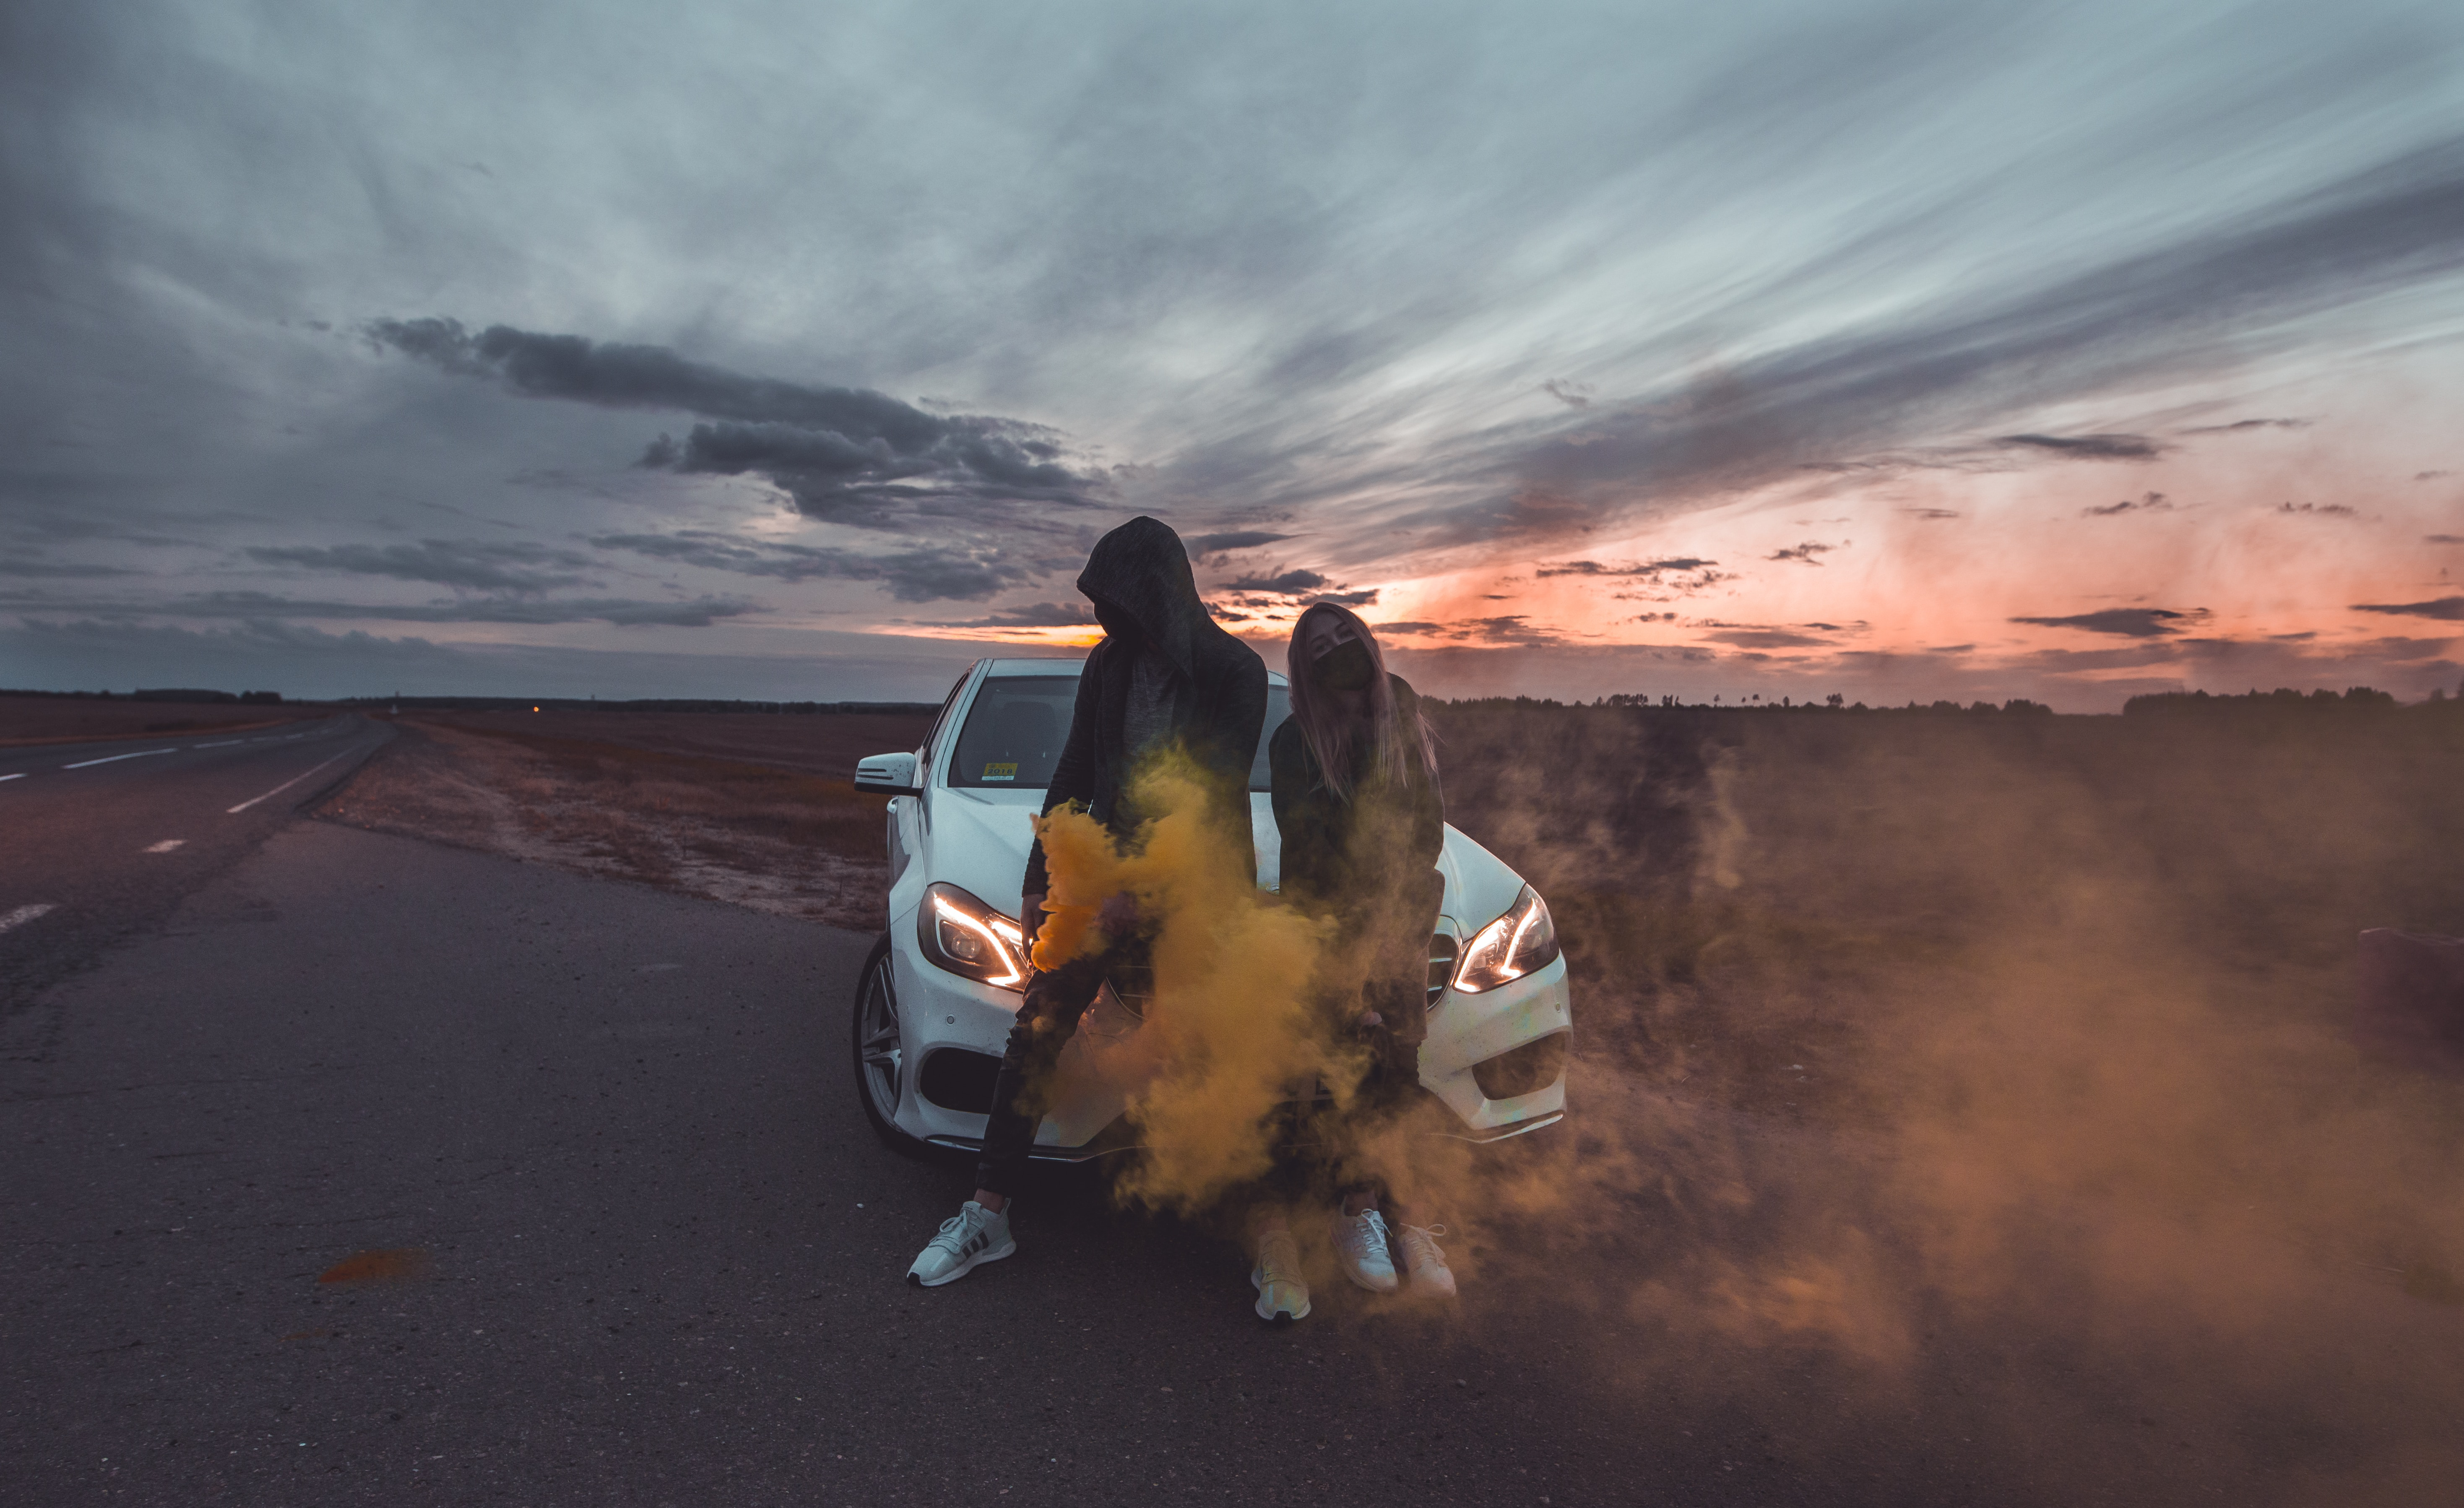 80589 download wallpaper Miscellanea, Miscellaneous, Couple, Pair, Car, Girl, Guy, Smoke screensavers and pictures for free